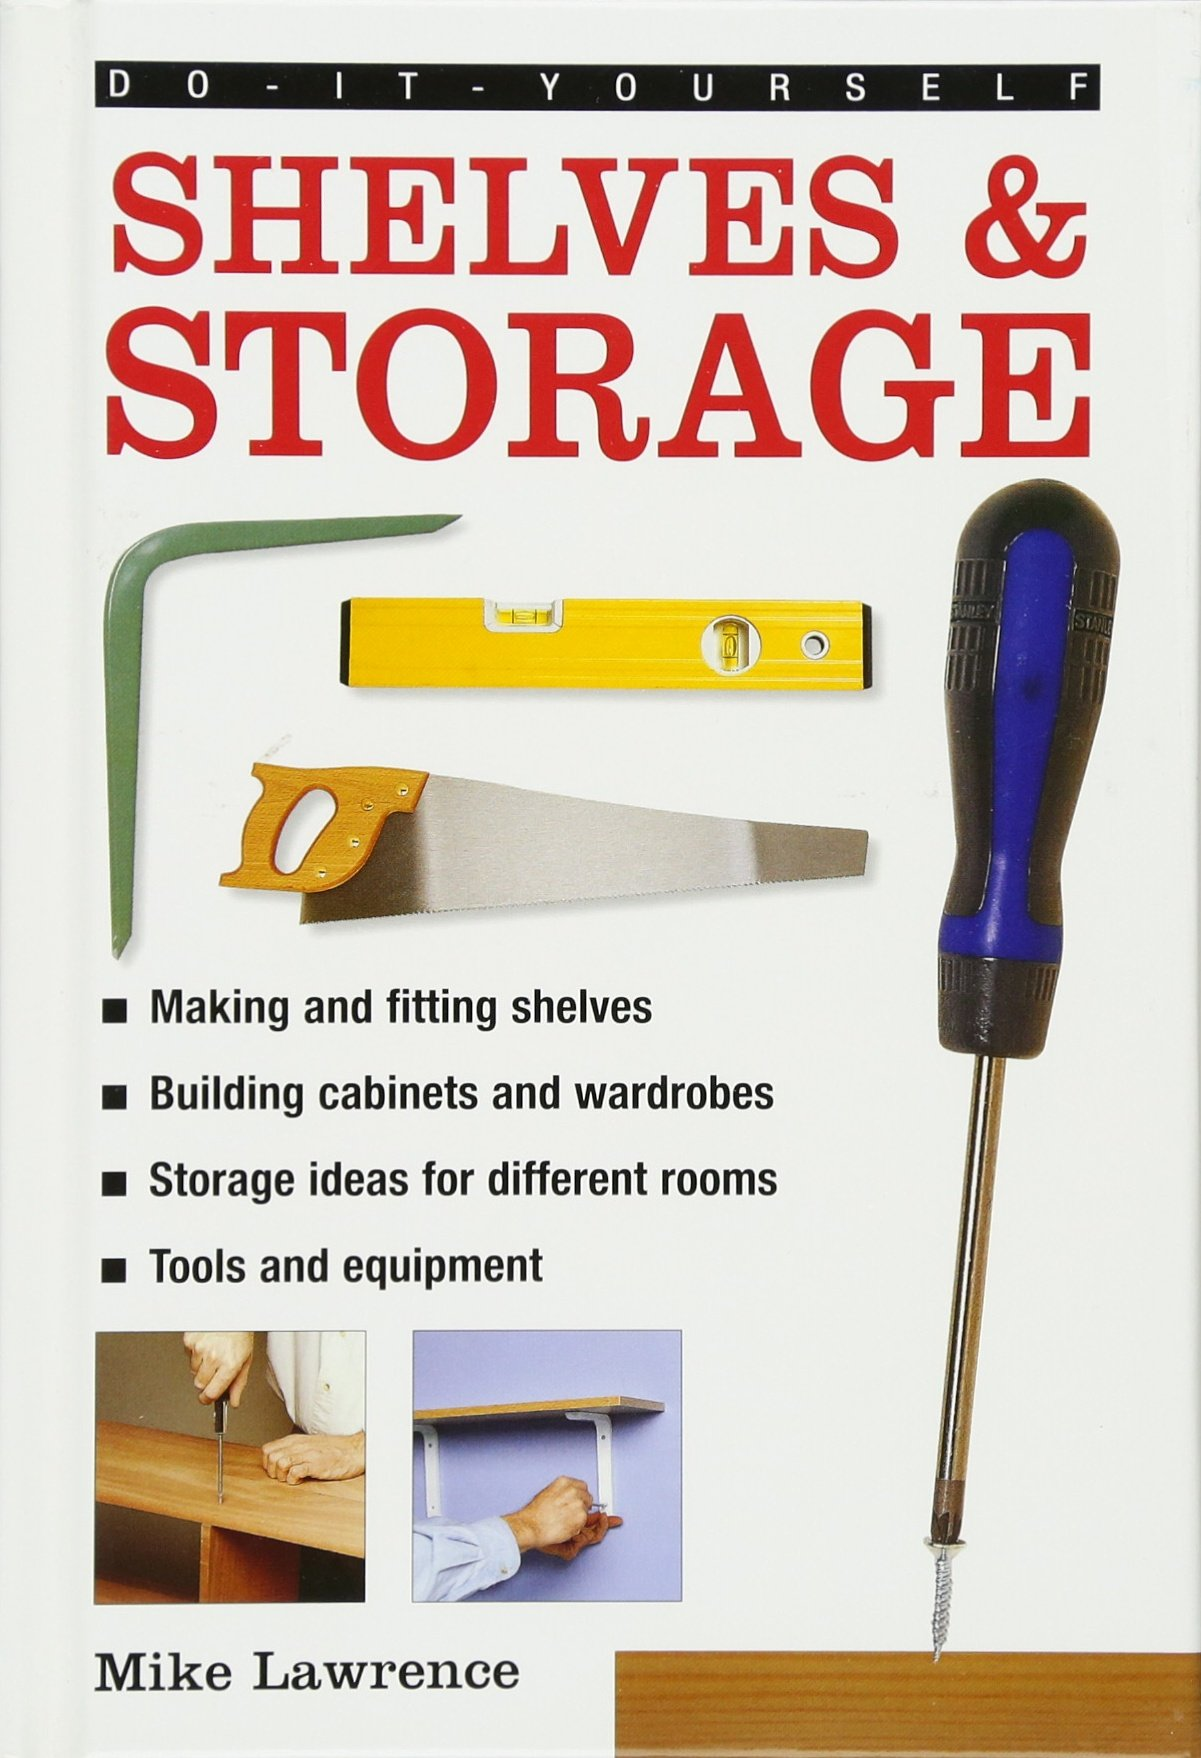 Do-It-Yourself: Shelves & Storage: A Practical Instructive Guide to Building Shelves and Storage Facilities in Your Home